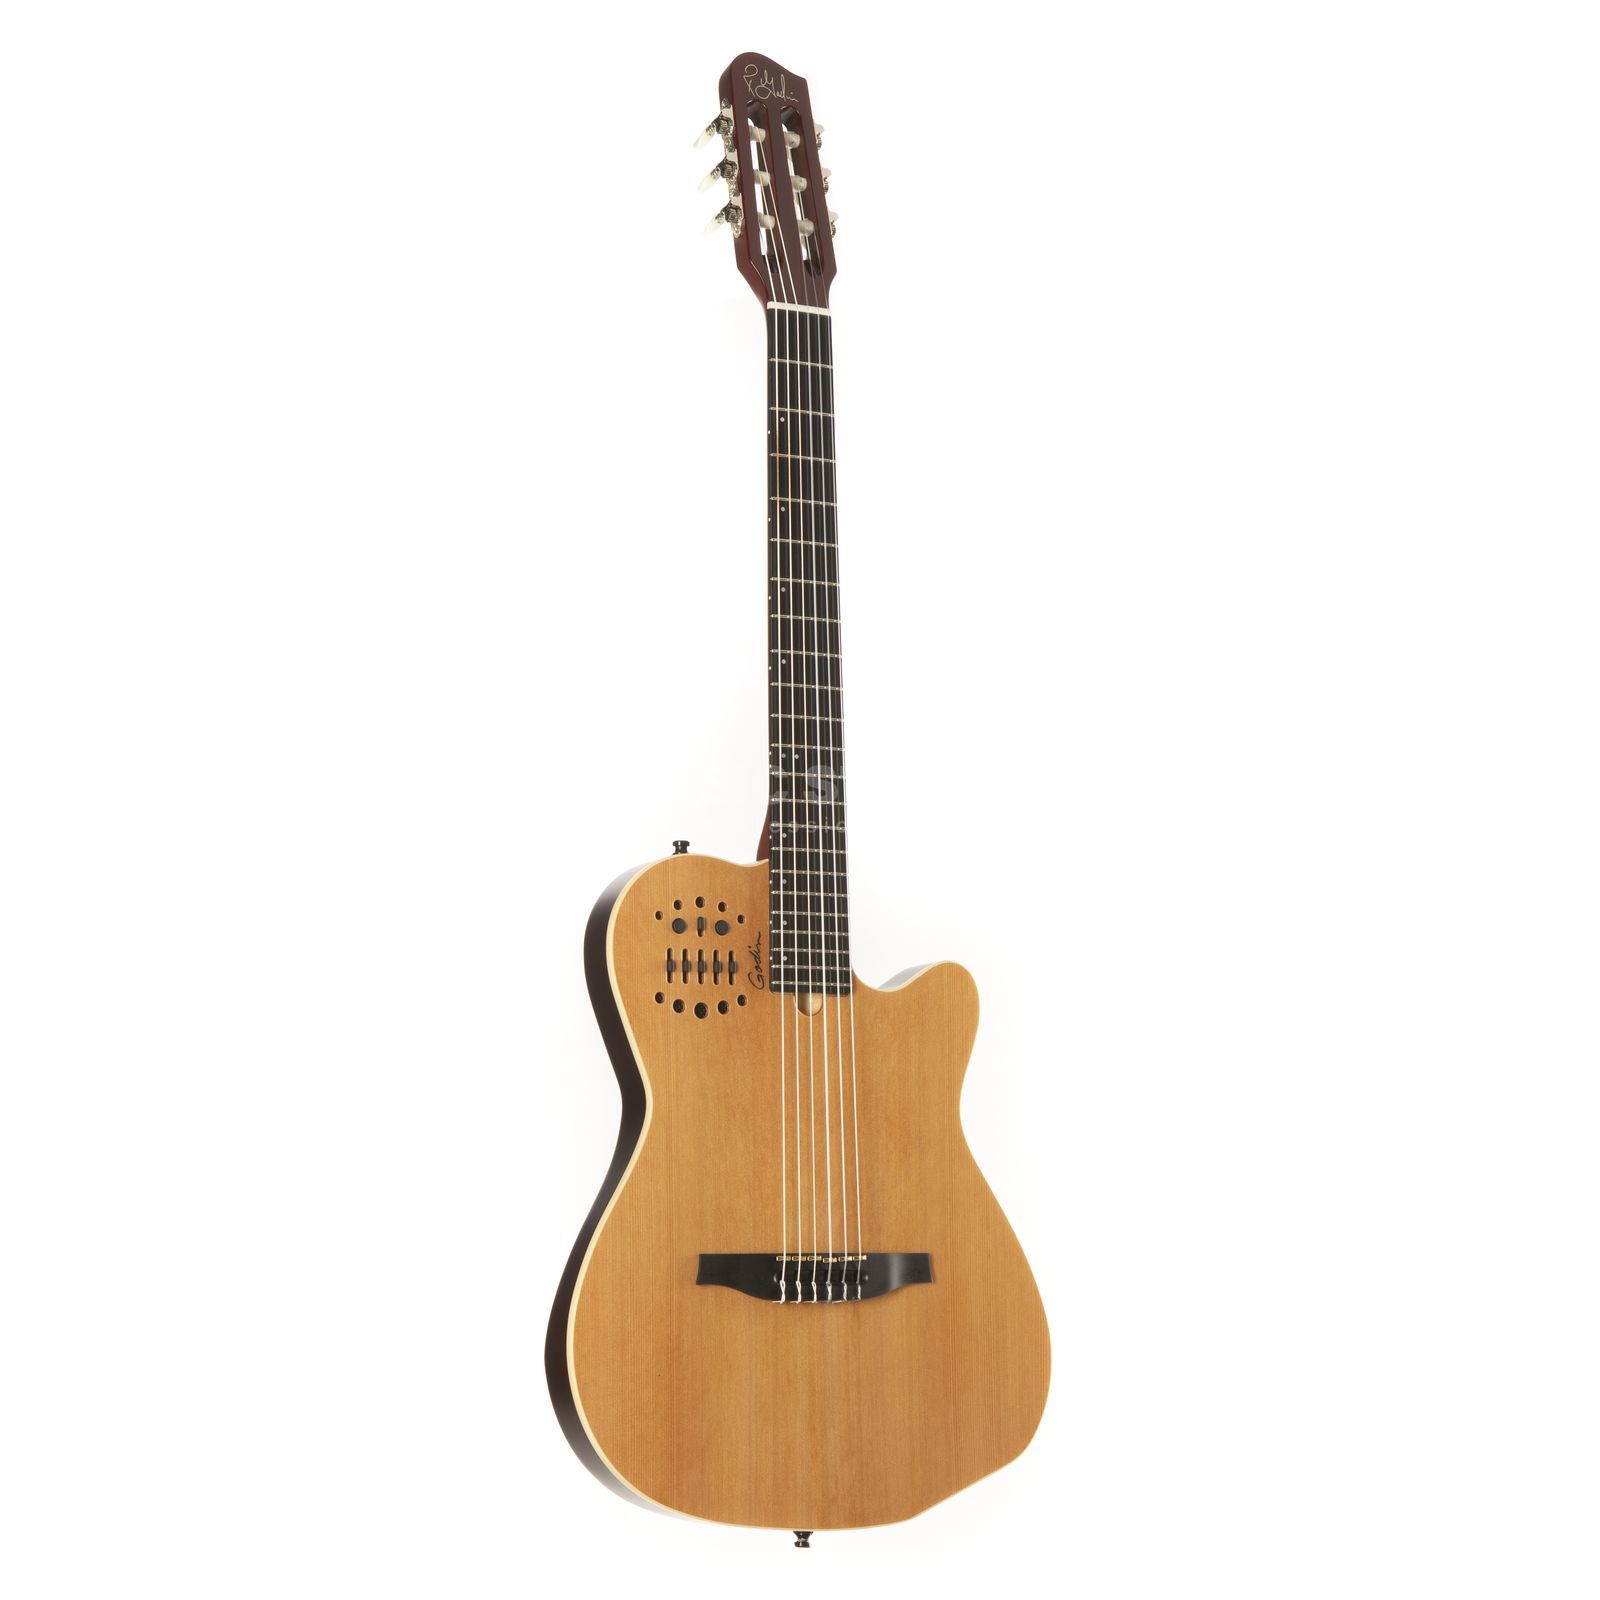 Godin ACS-SA Synth Access Nylon Stri ng Electro Acoustic, Natural   Produktbillede